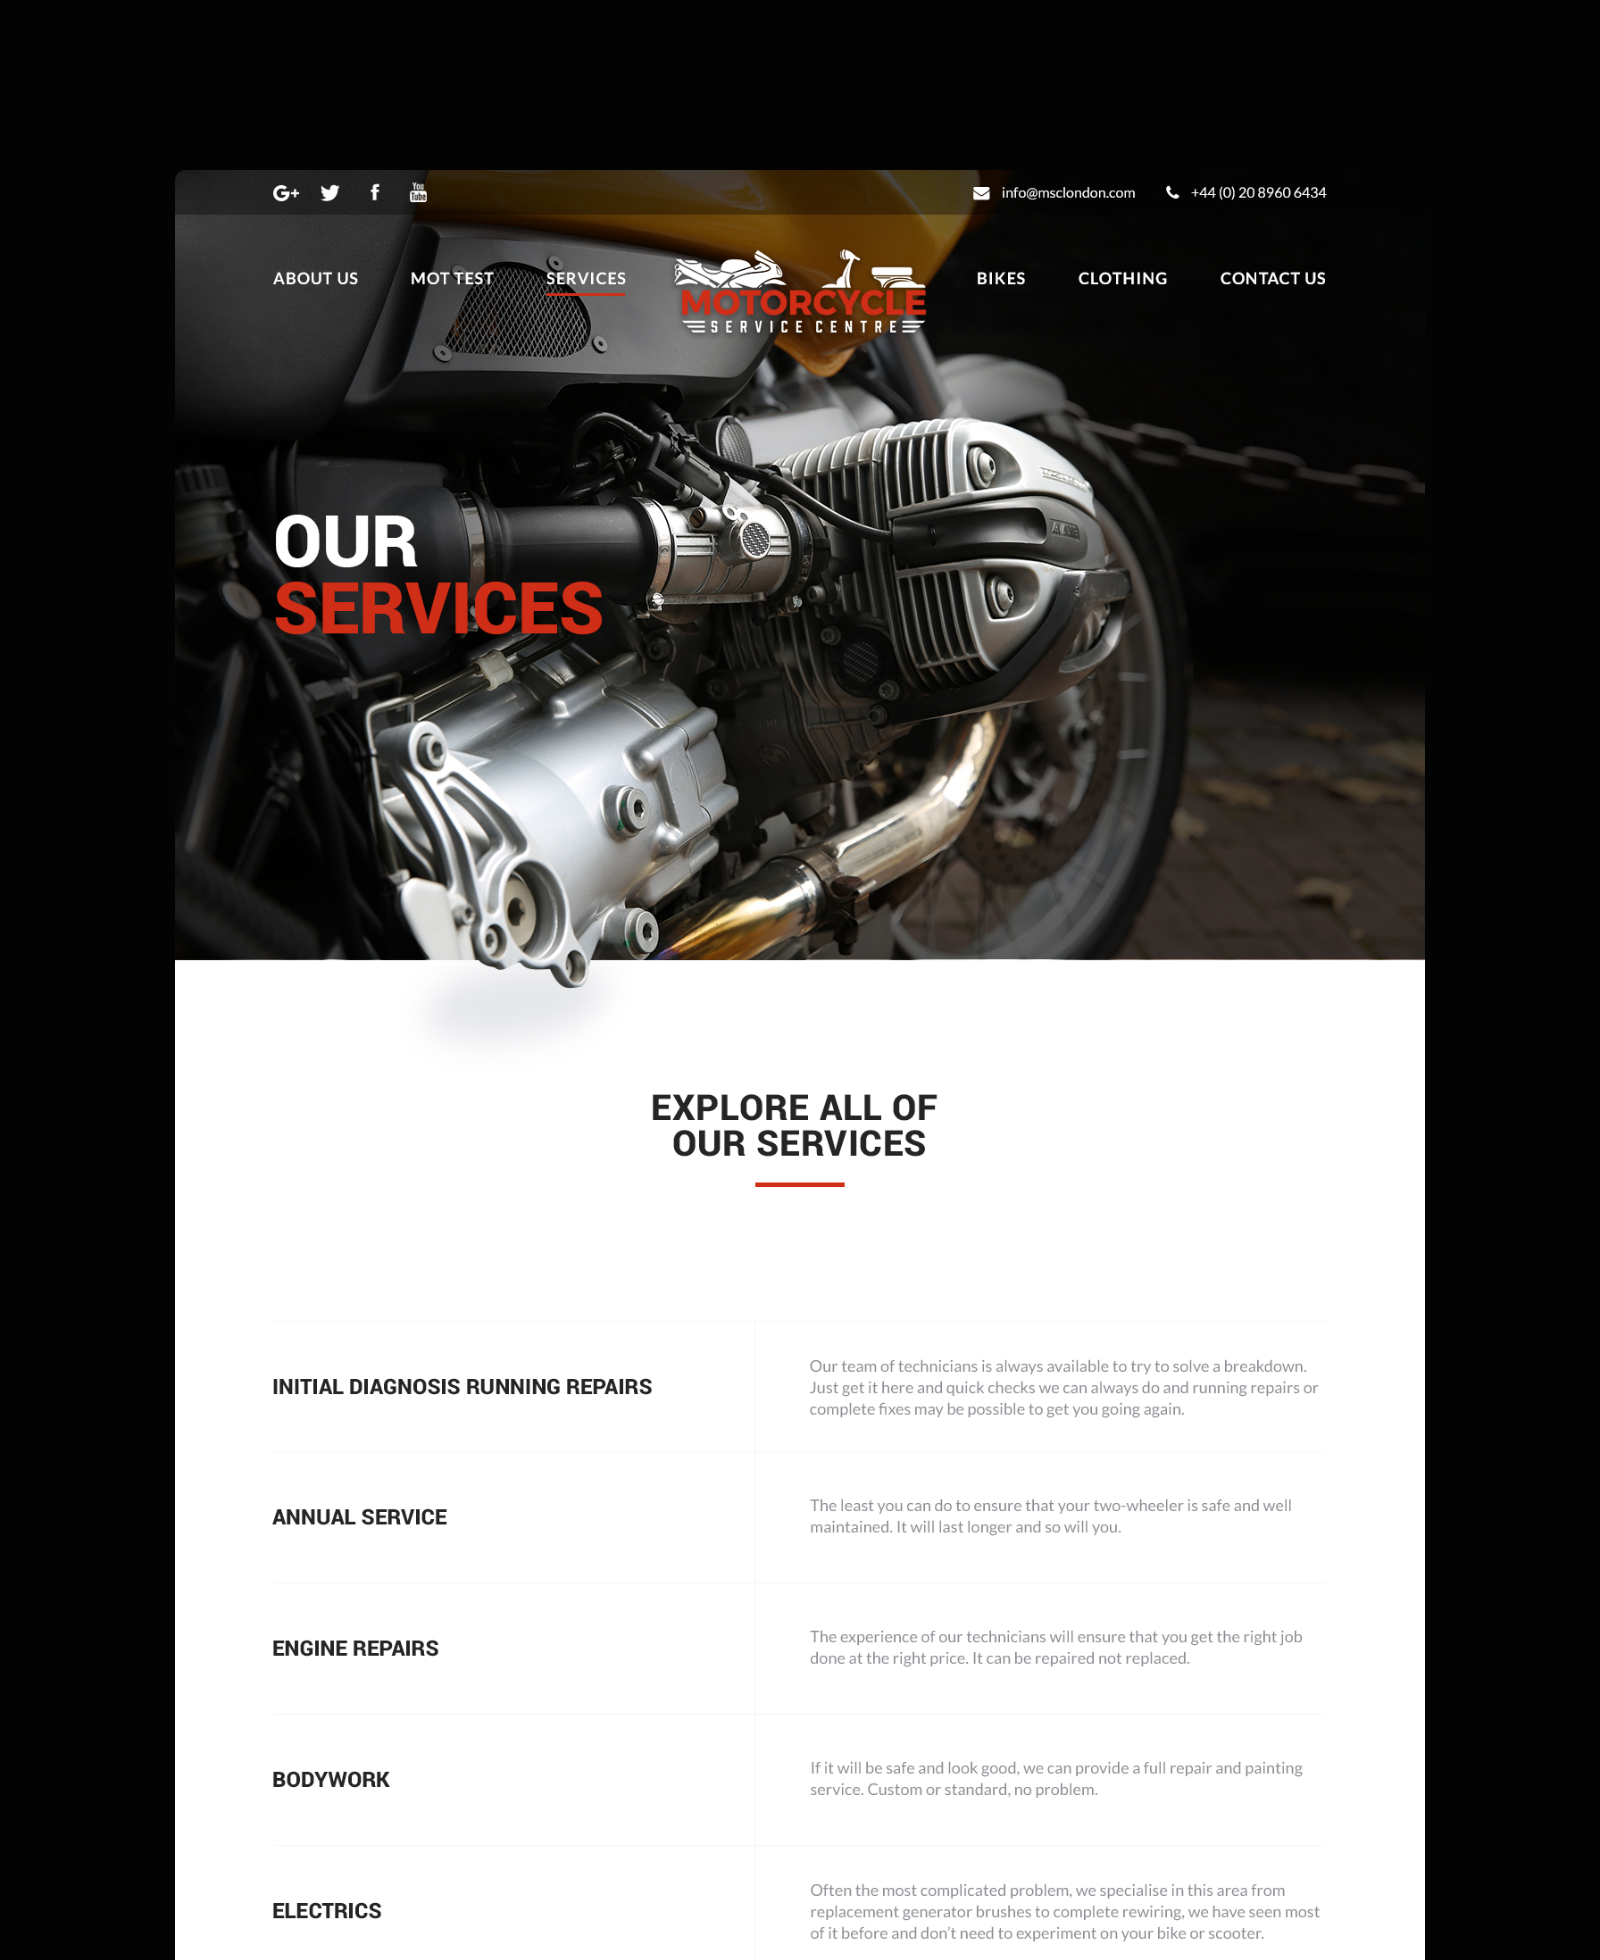 Motorcycle Service Centre Servicing Page